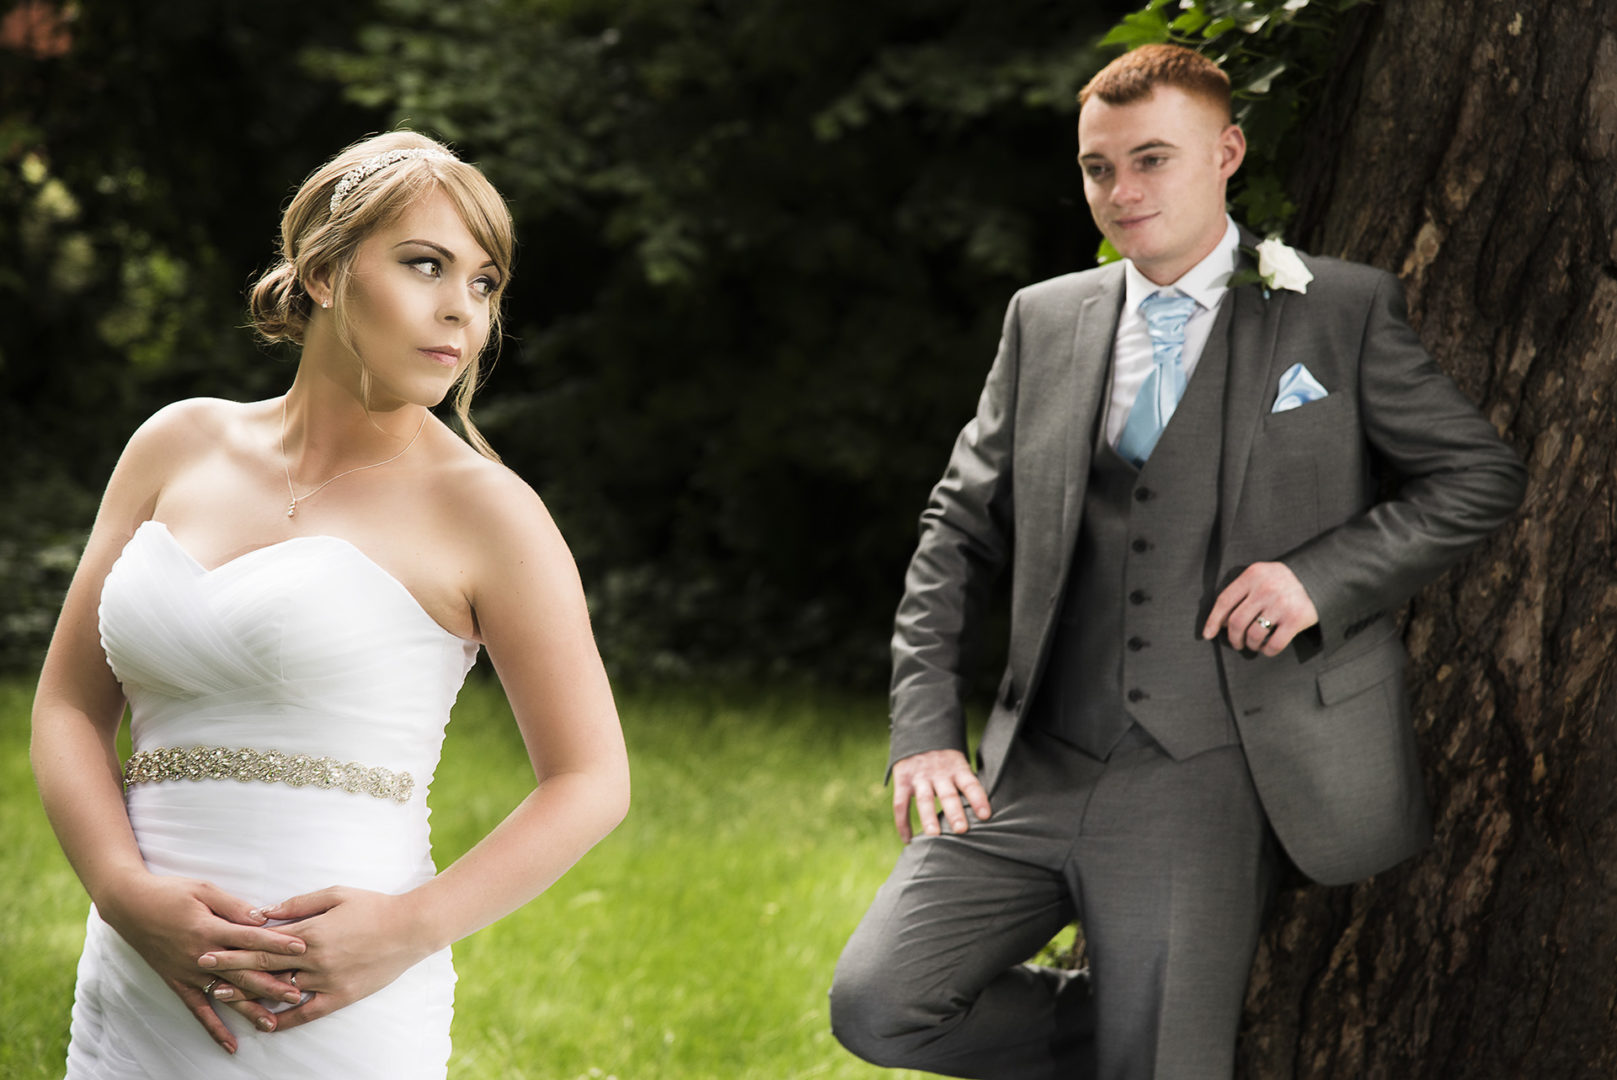 Warwickshire wedding photographer AJTImages